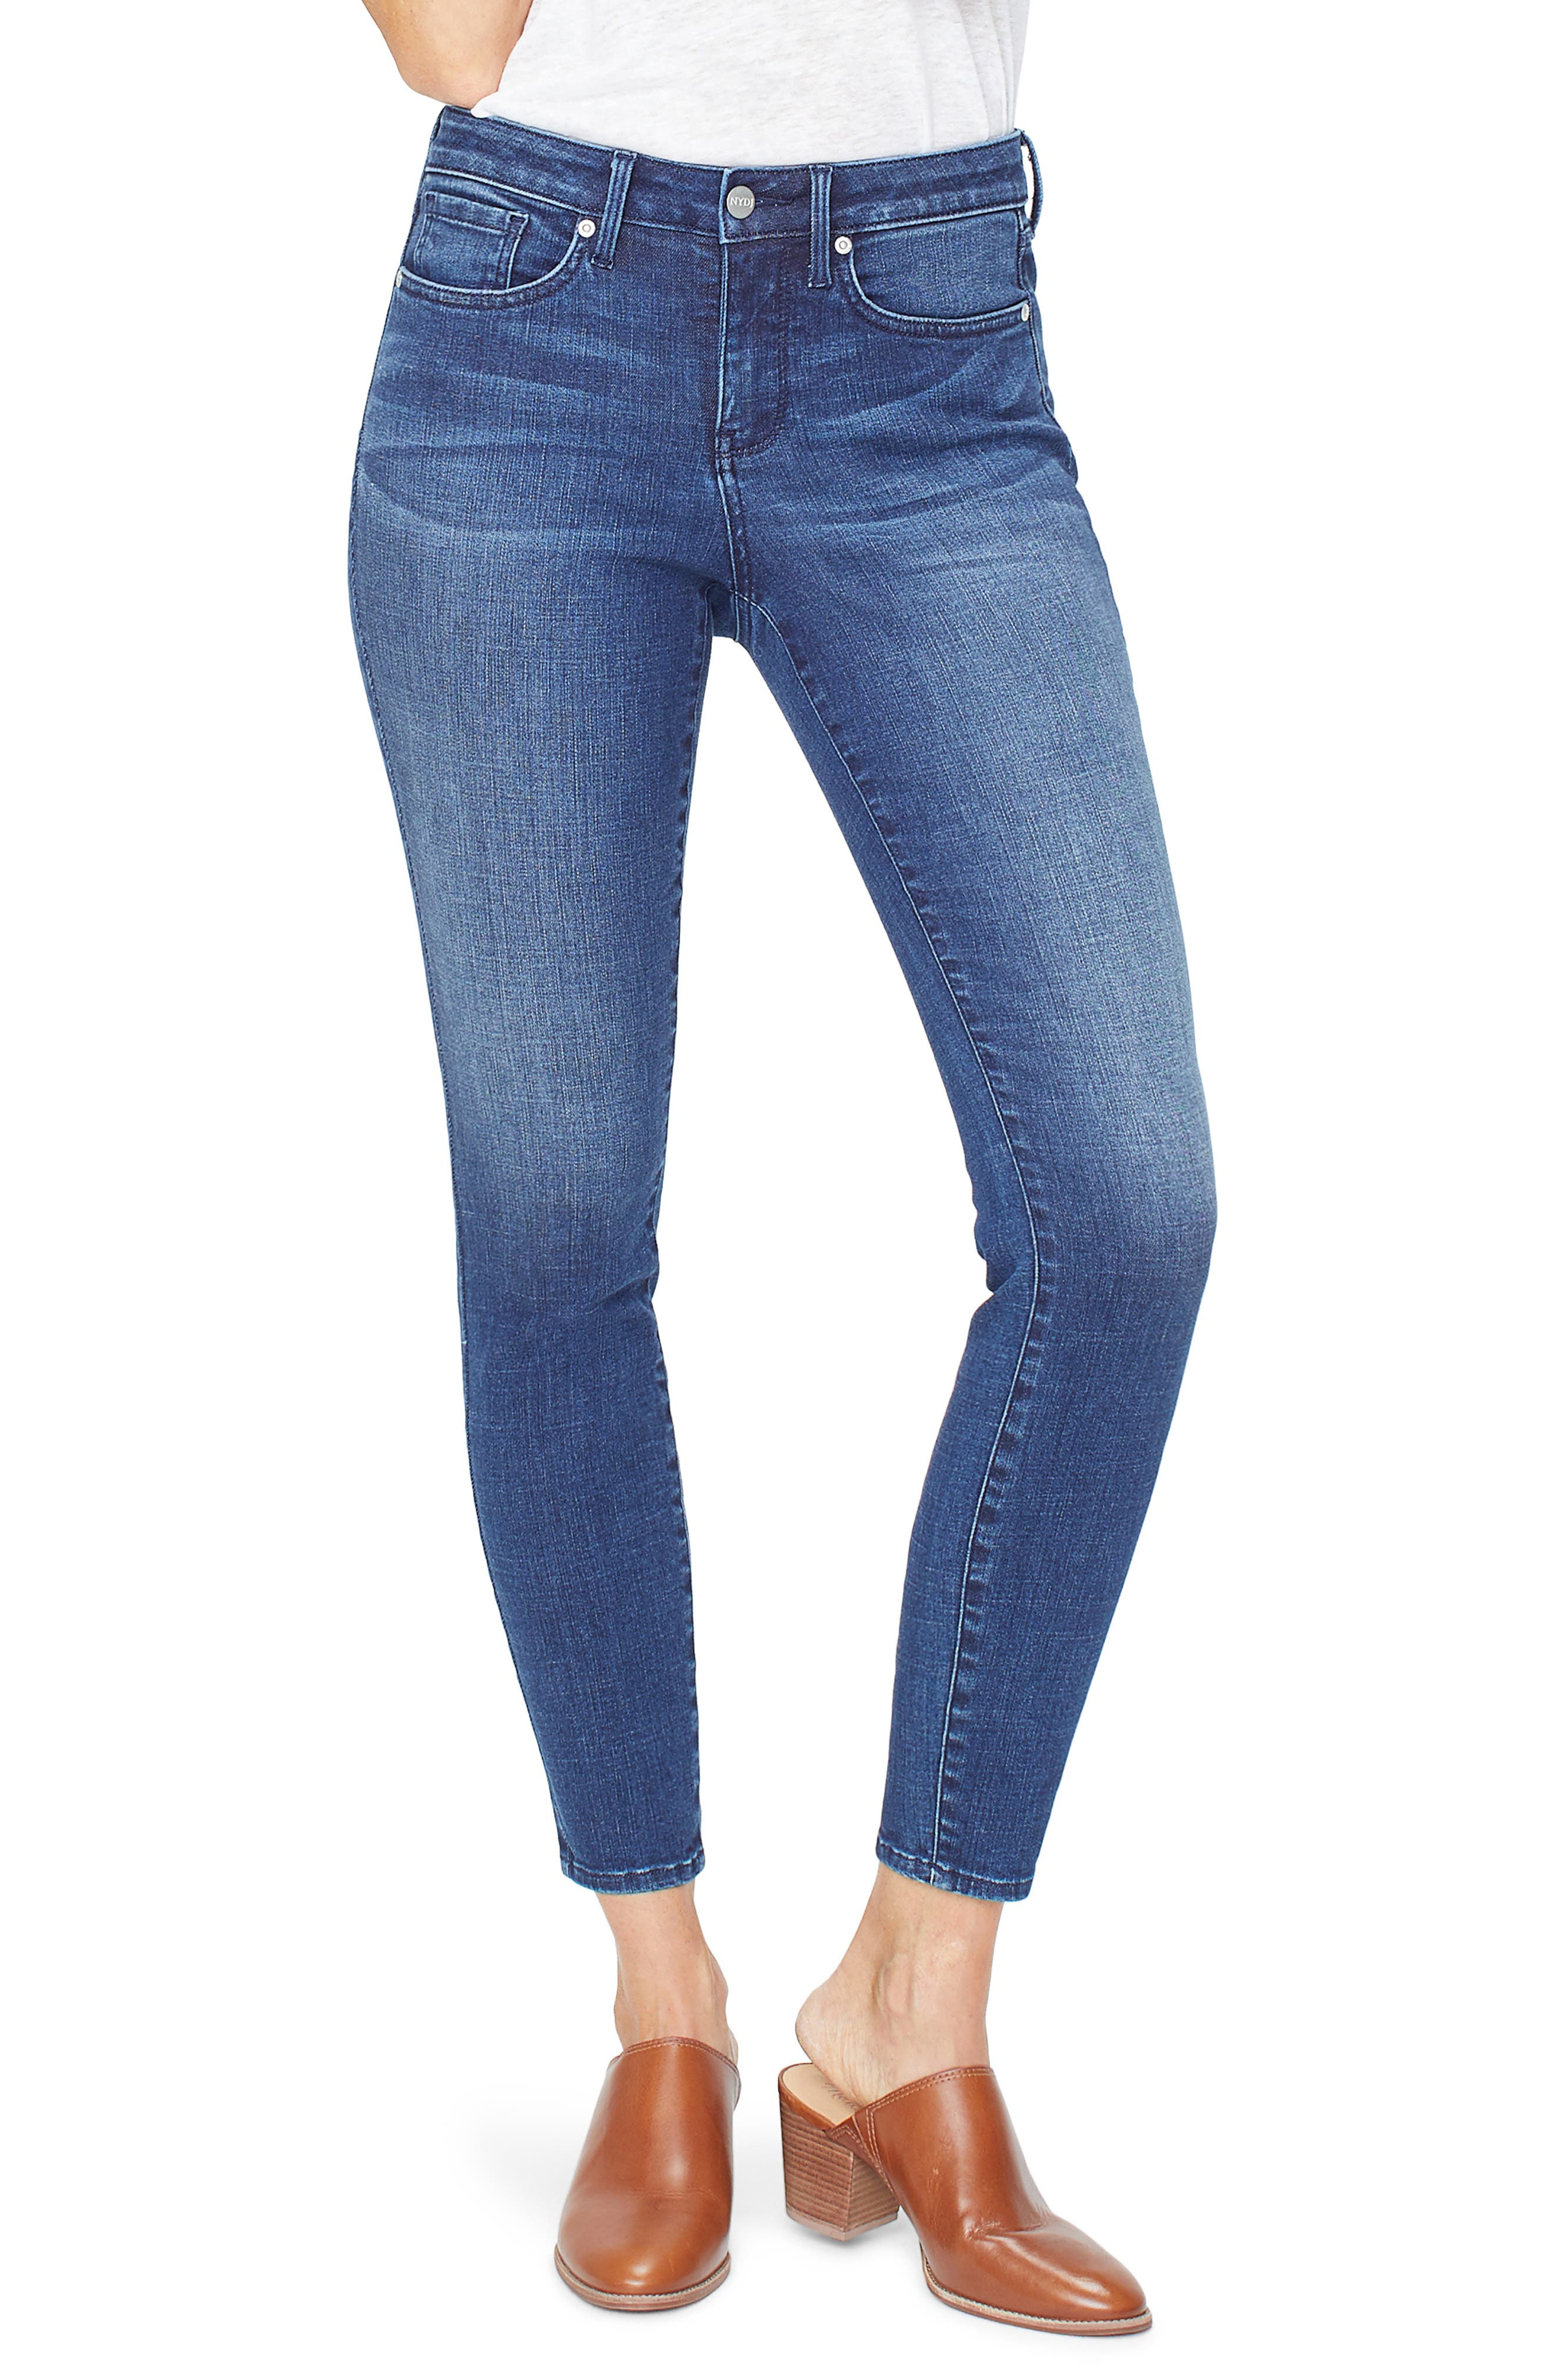 ankle jeans for petites